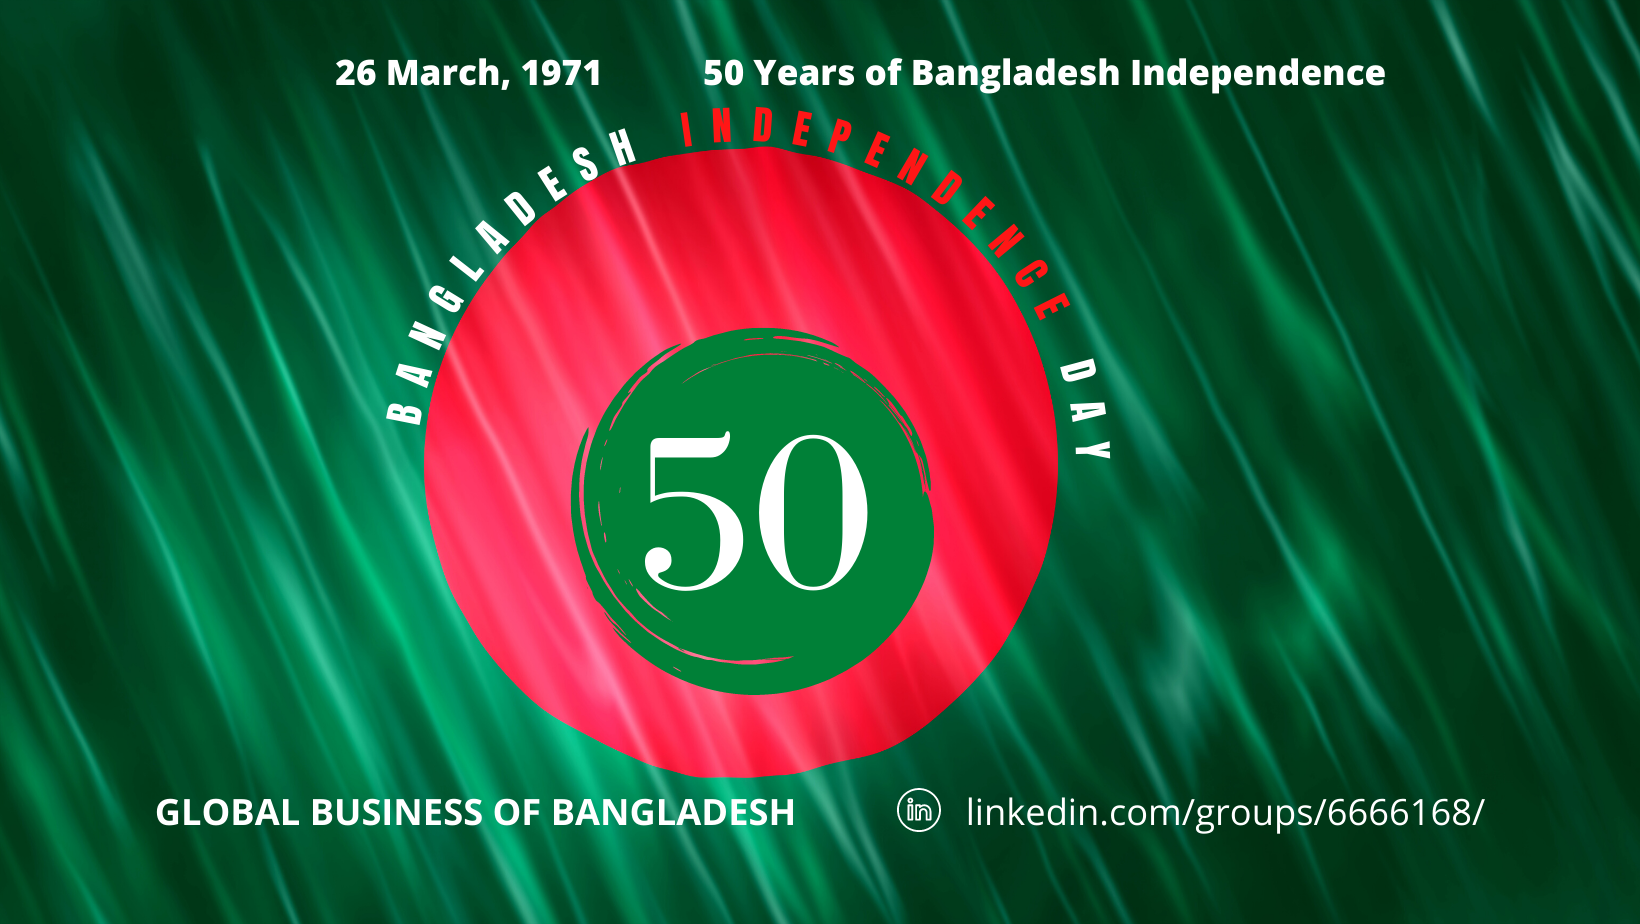 Bangladesh Independence Day: 50 years. 26 March 1972